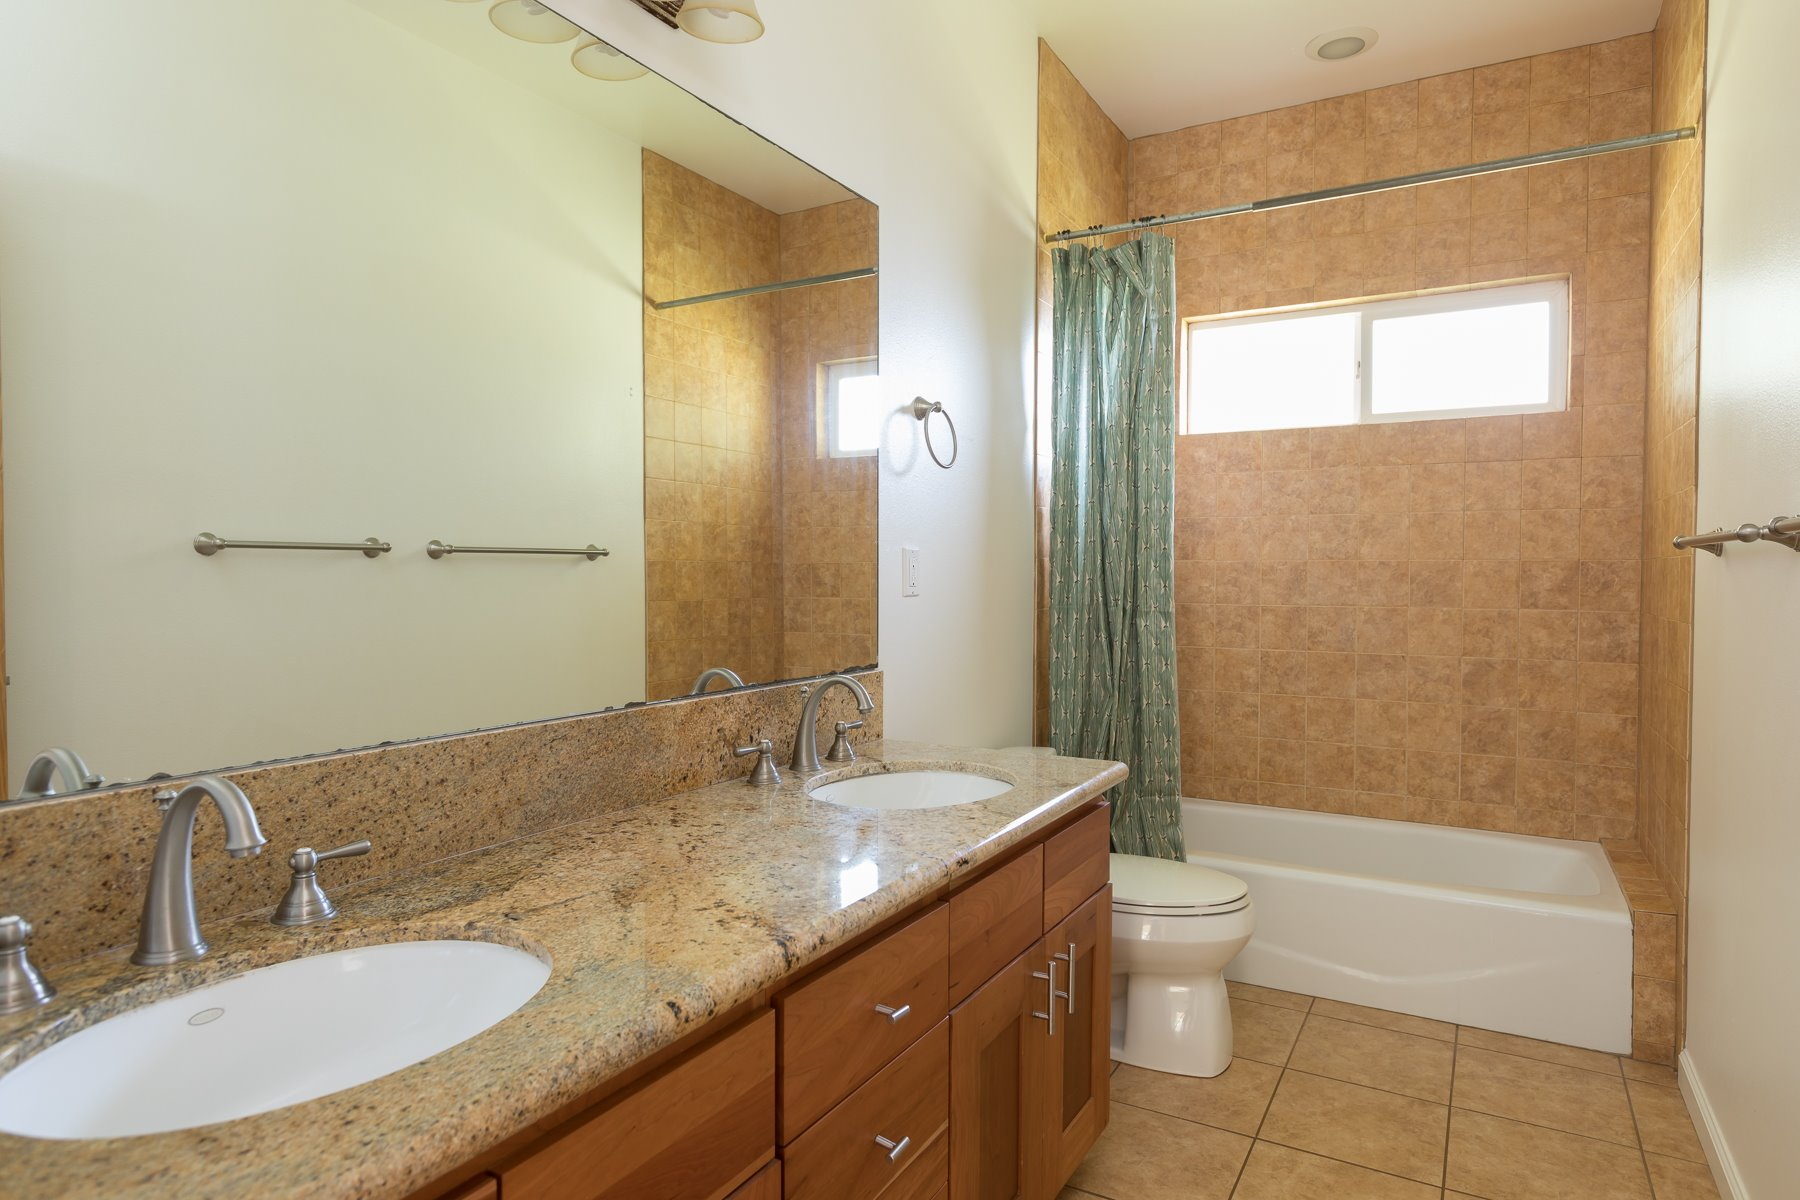 Each bathroom has double sinks. The same high quality finishes are used in all the bathrooms.